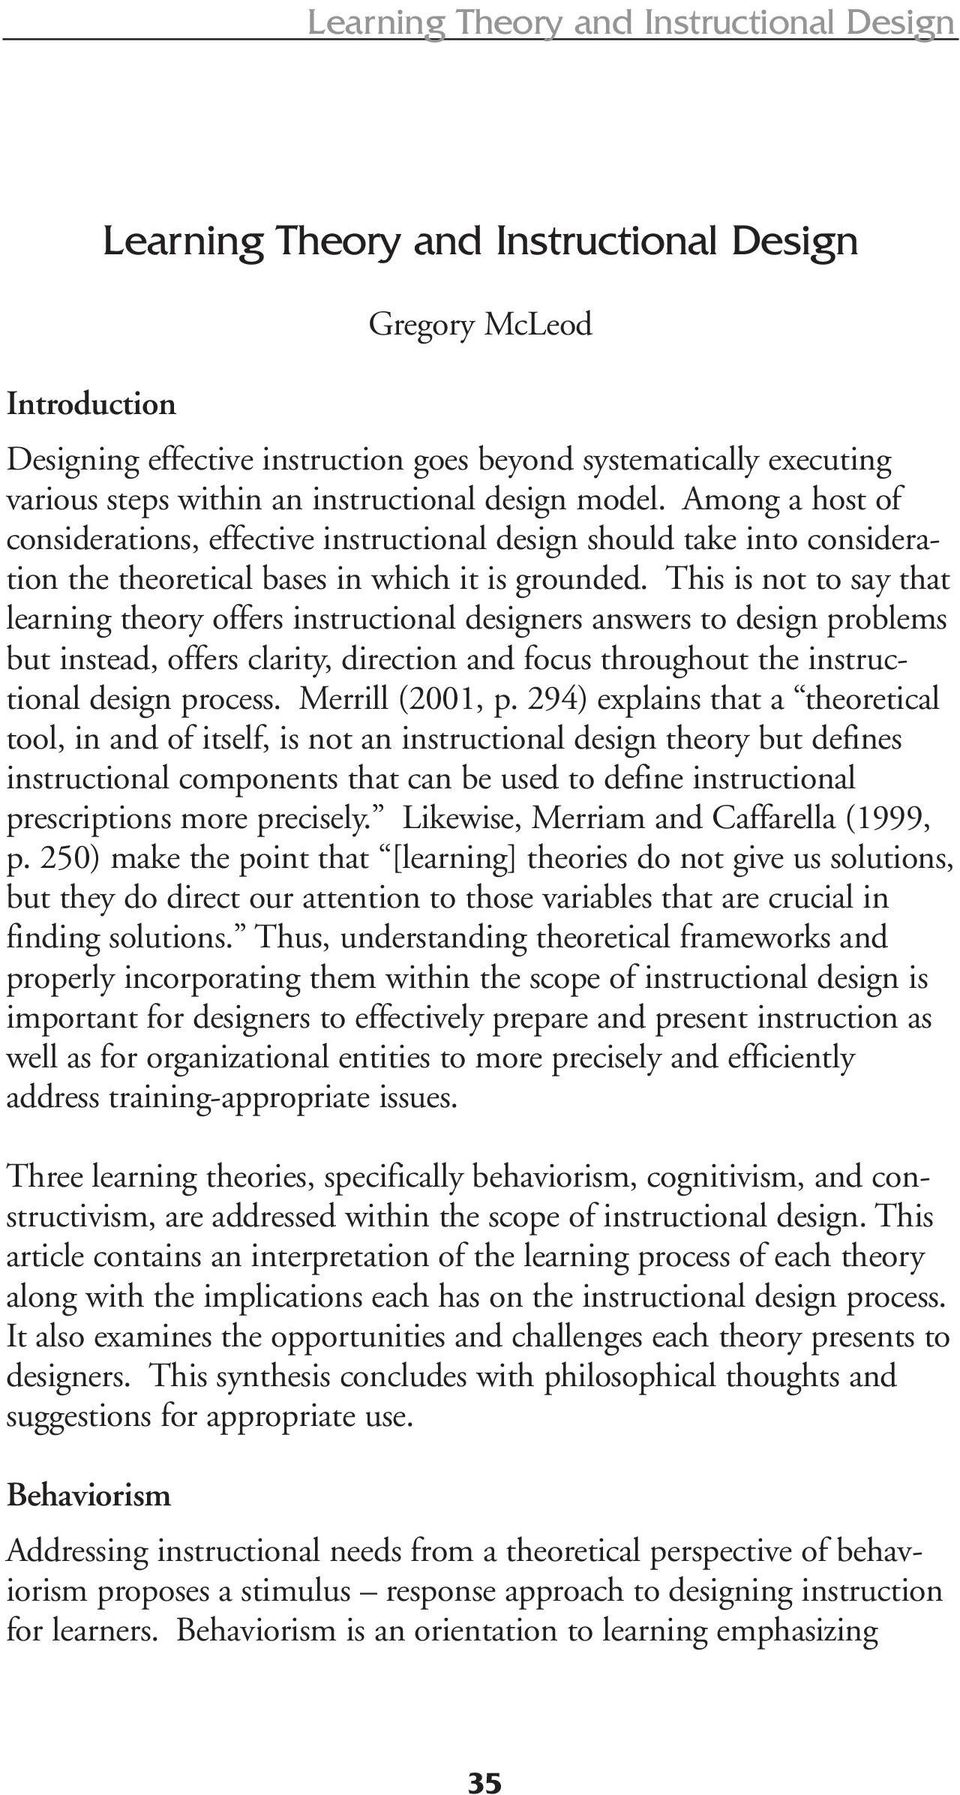 Learning Theory And Instructional Design Pdf Free Download